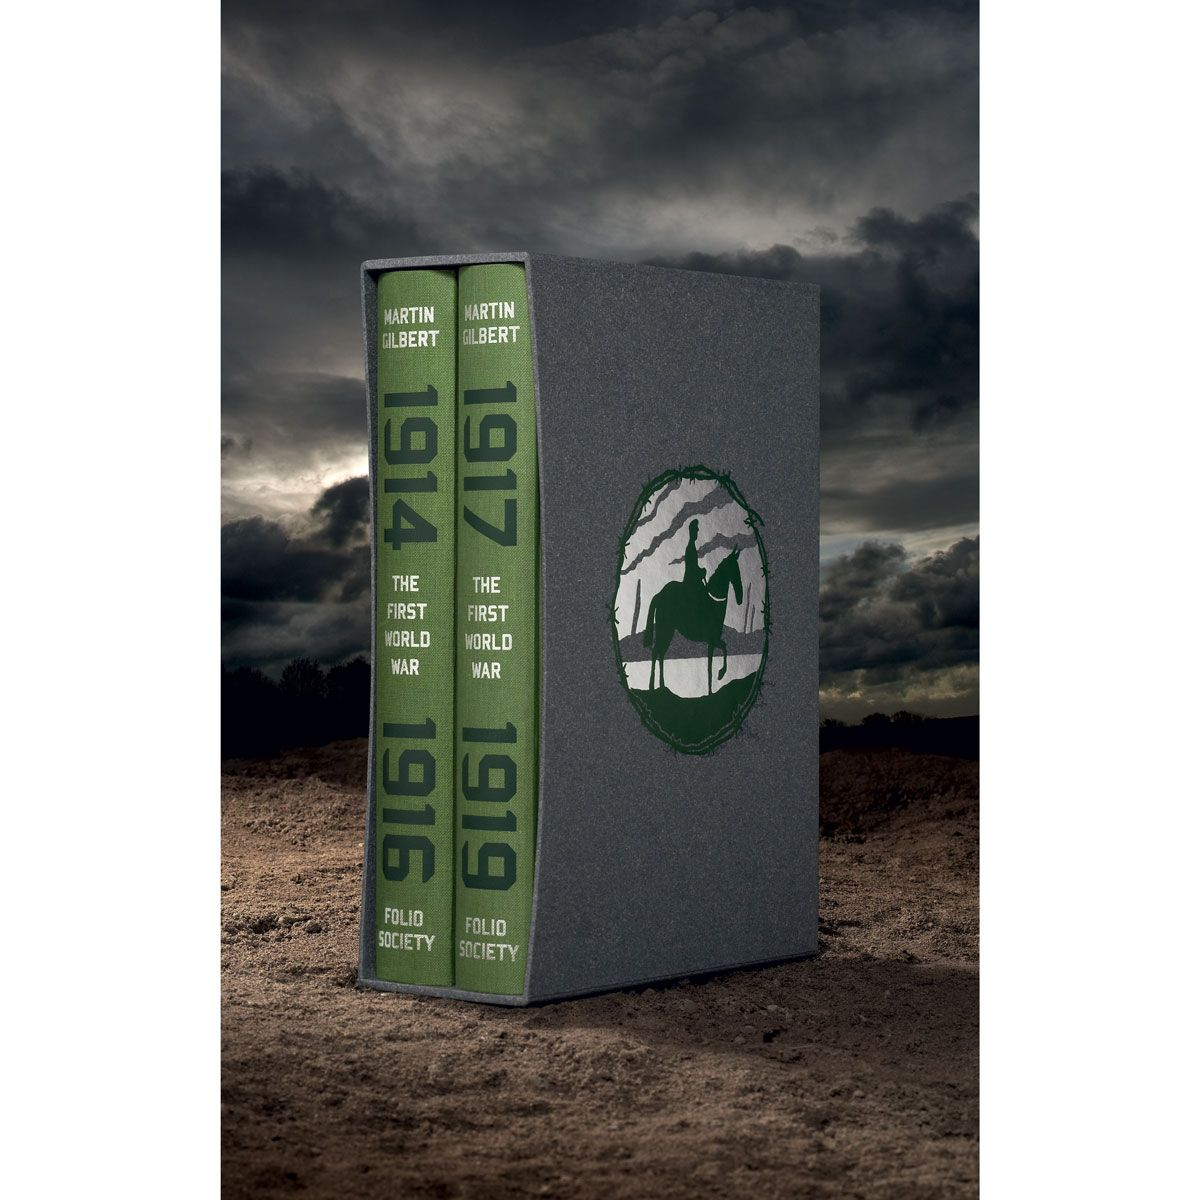 The First World War from Folio Society